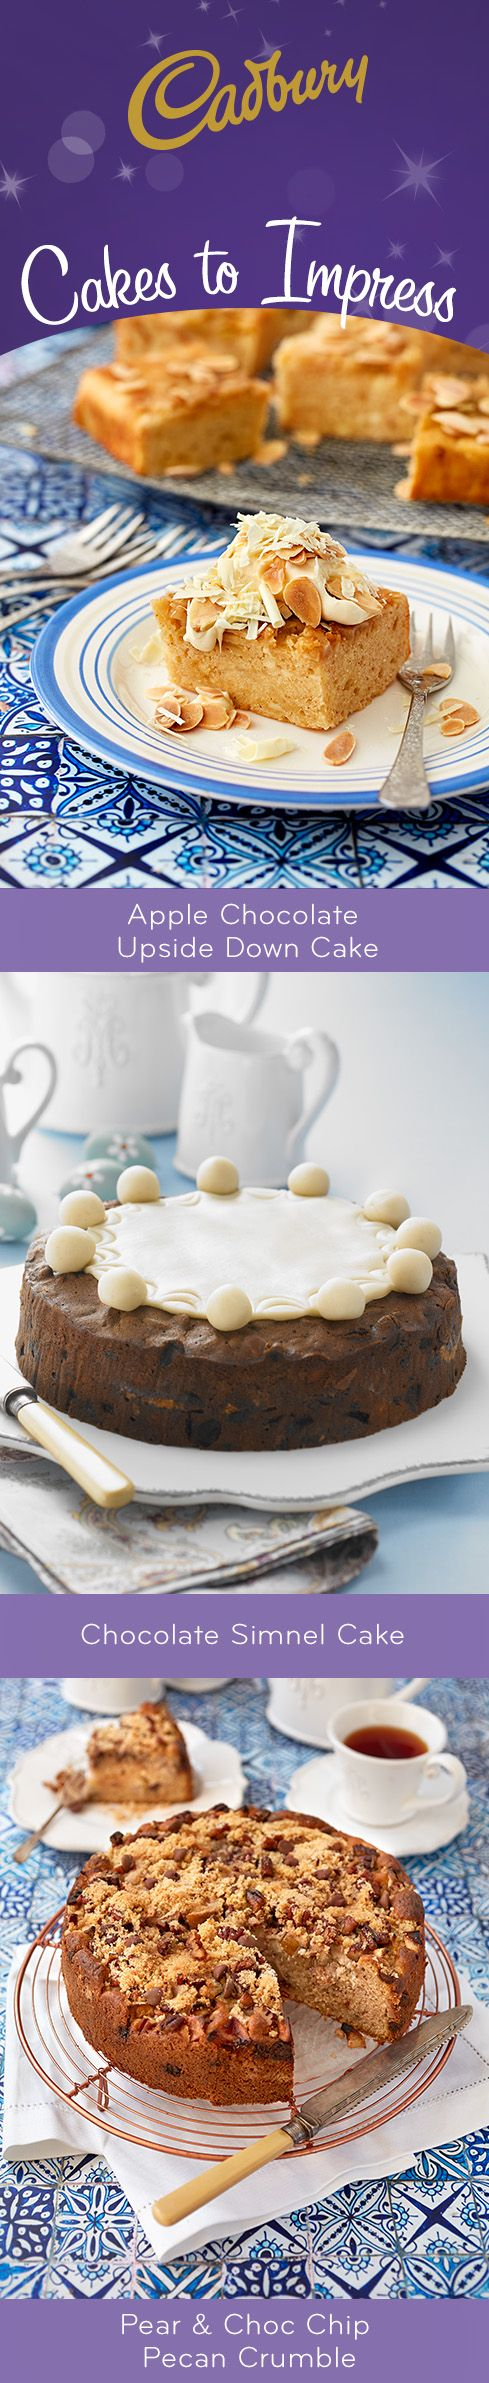 Pin copy - Whether you're baking for a celebration, a family get-together, or a Birthday party at home, these decadent cake recipes won't let you down! #bakeitcadbury #baking #chocolate #dessert #cakes